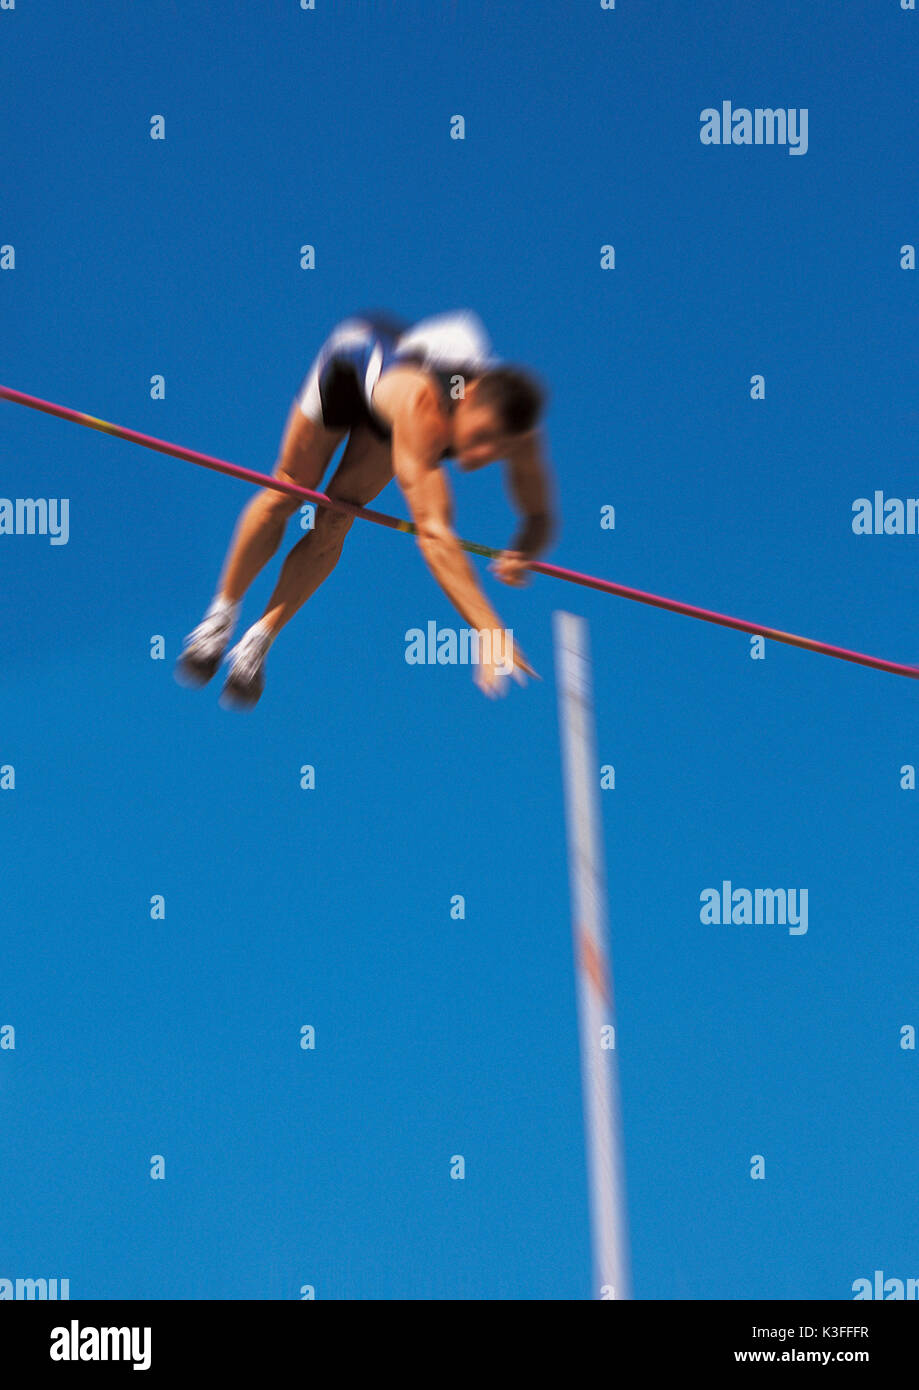 Man jumps over the bar close the pole vault - Stock Image